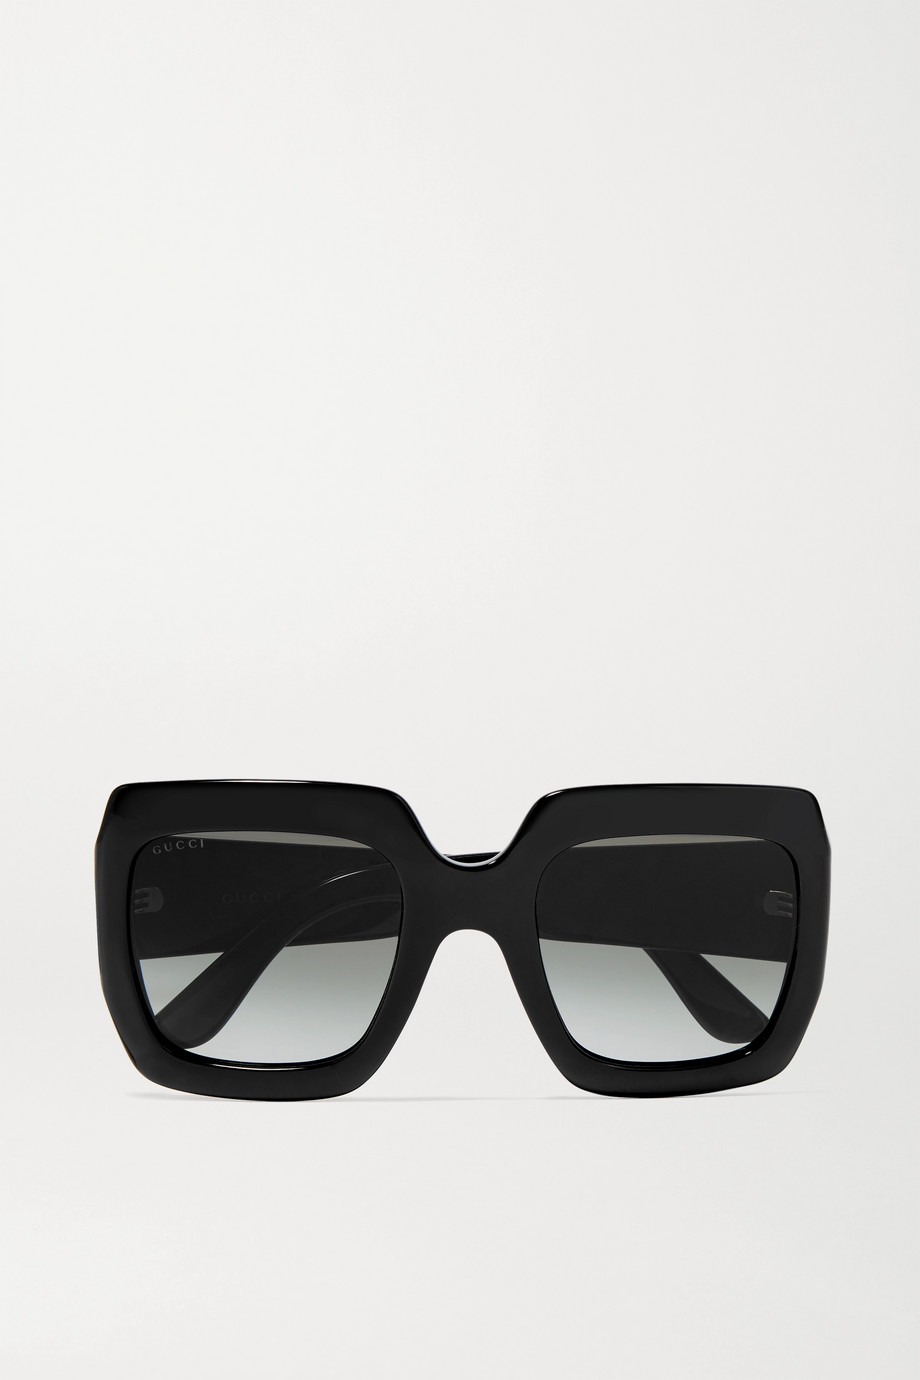 GUCCI Pop Web oversized square-frame acetate sunglasses